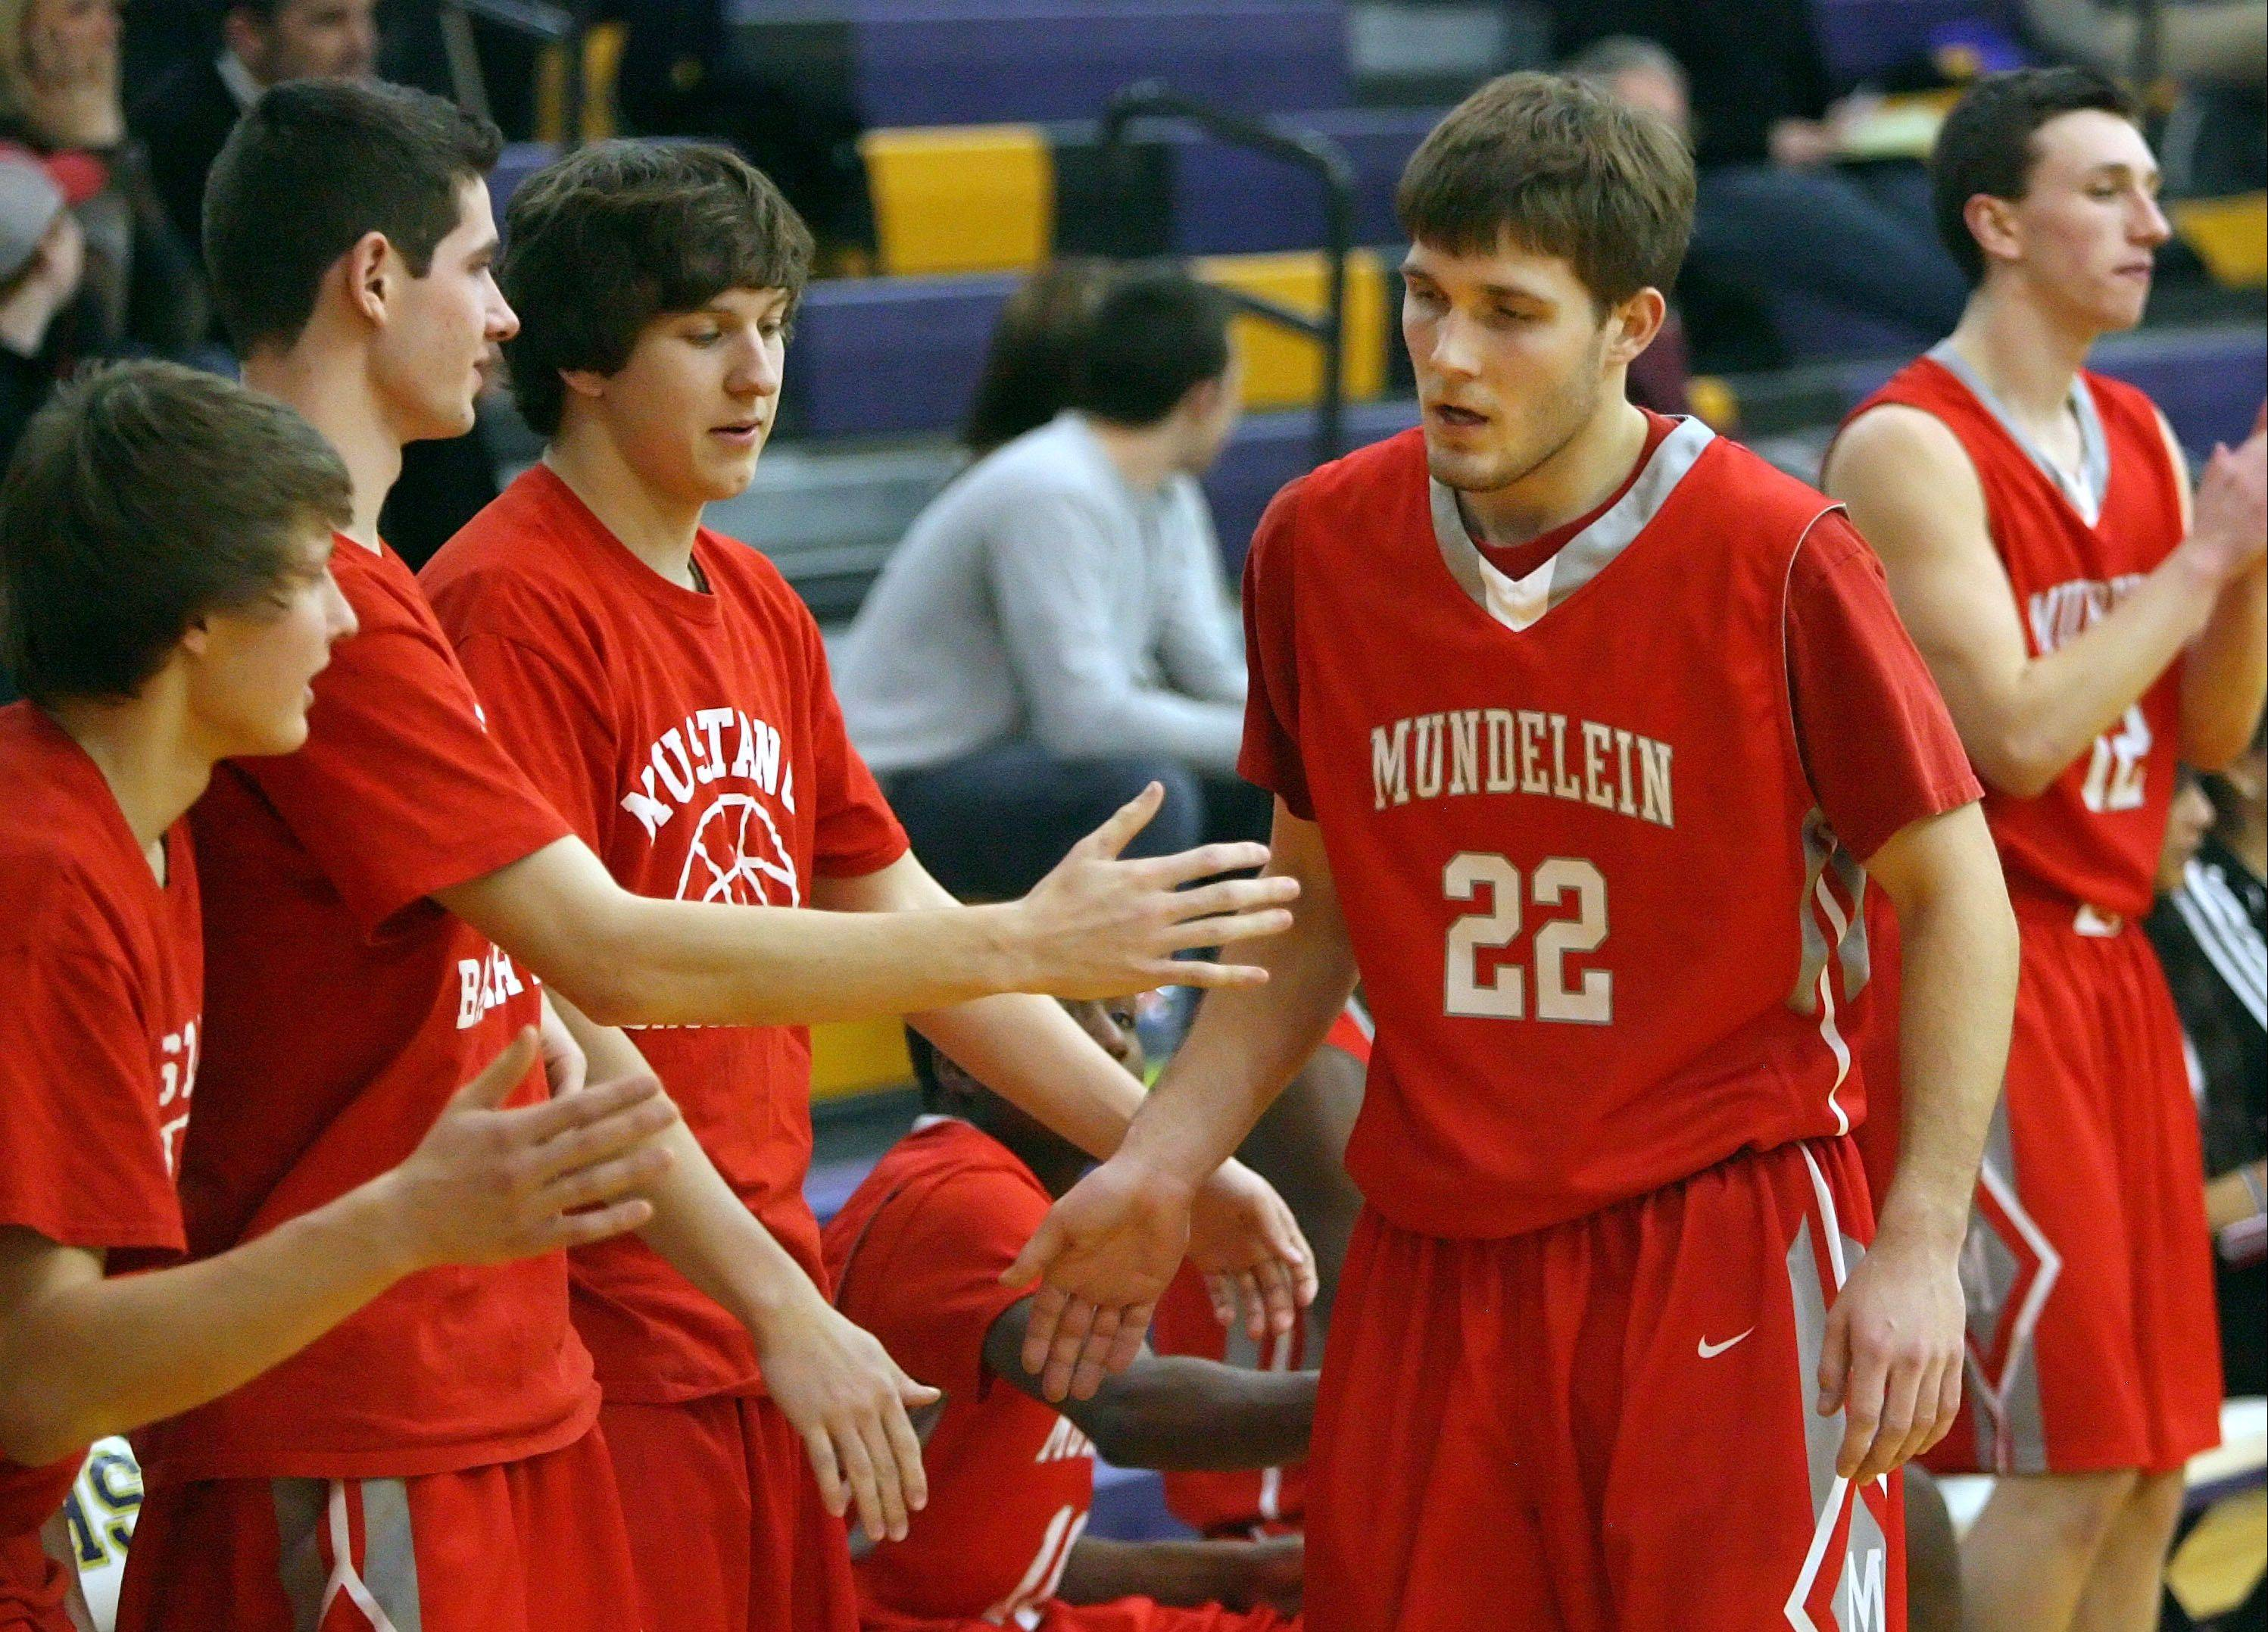 Mundelein�s Robert Knar gets high-fives from the bench after breaking the all-time Mundelein scoring record held by Kyle Kessel on Wednesday night at Wauconda.